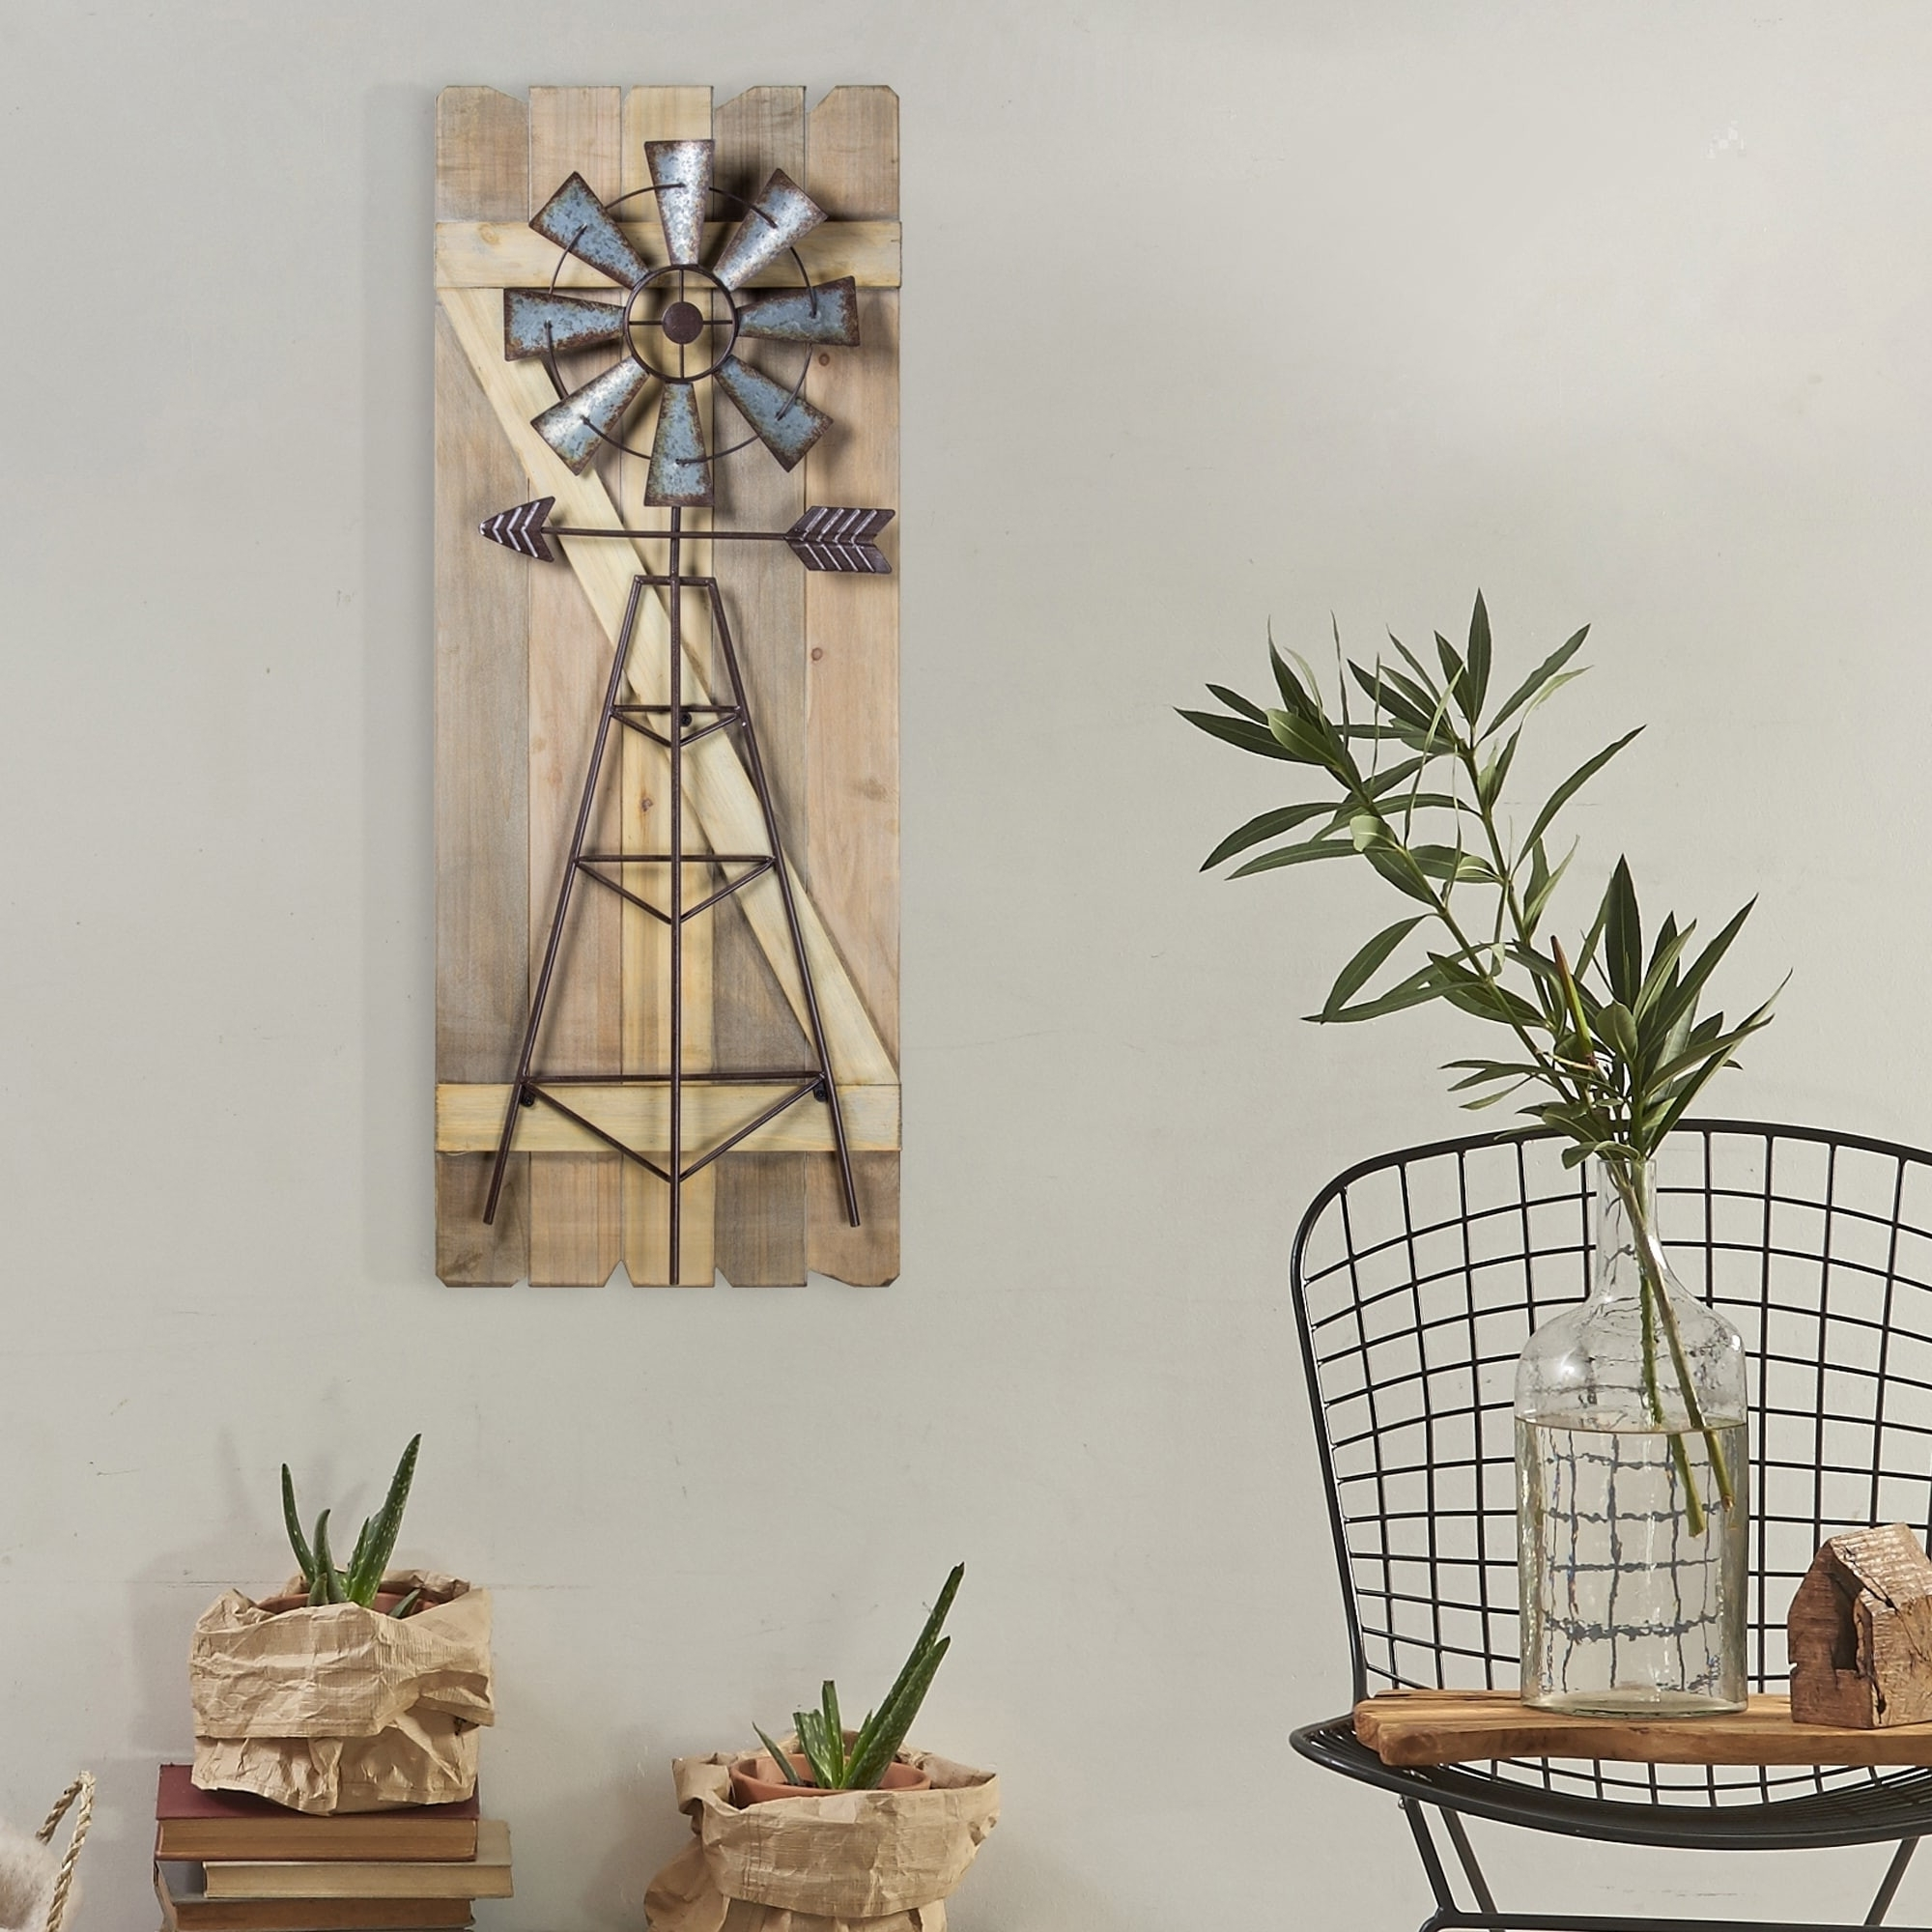 Magnificent Metal Windmill Wall Decor Crest Wall Art Ideas For Most Popular Windmill Wall Art (View 4 of 20)